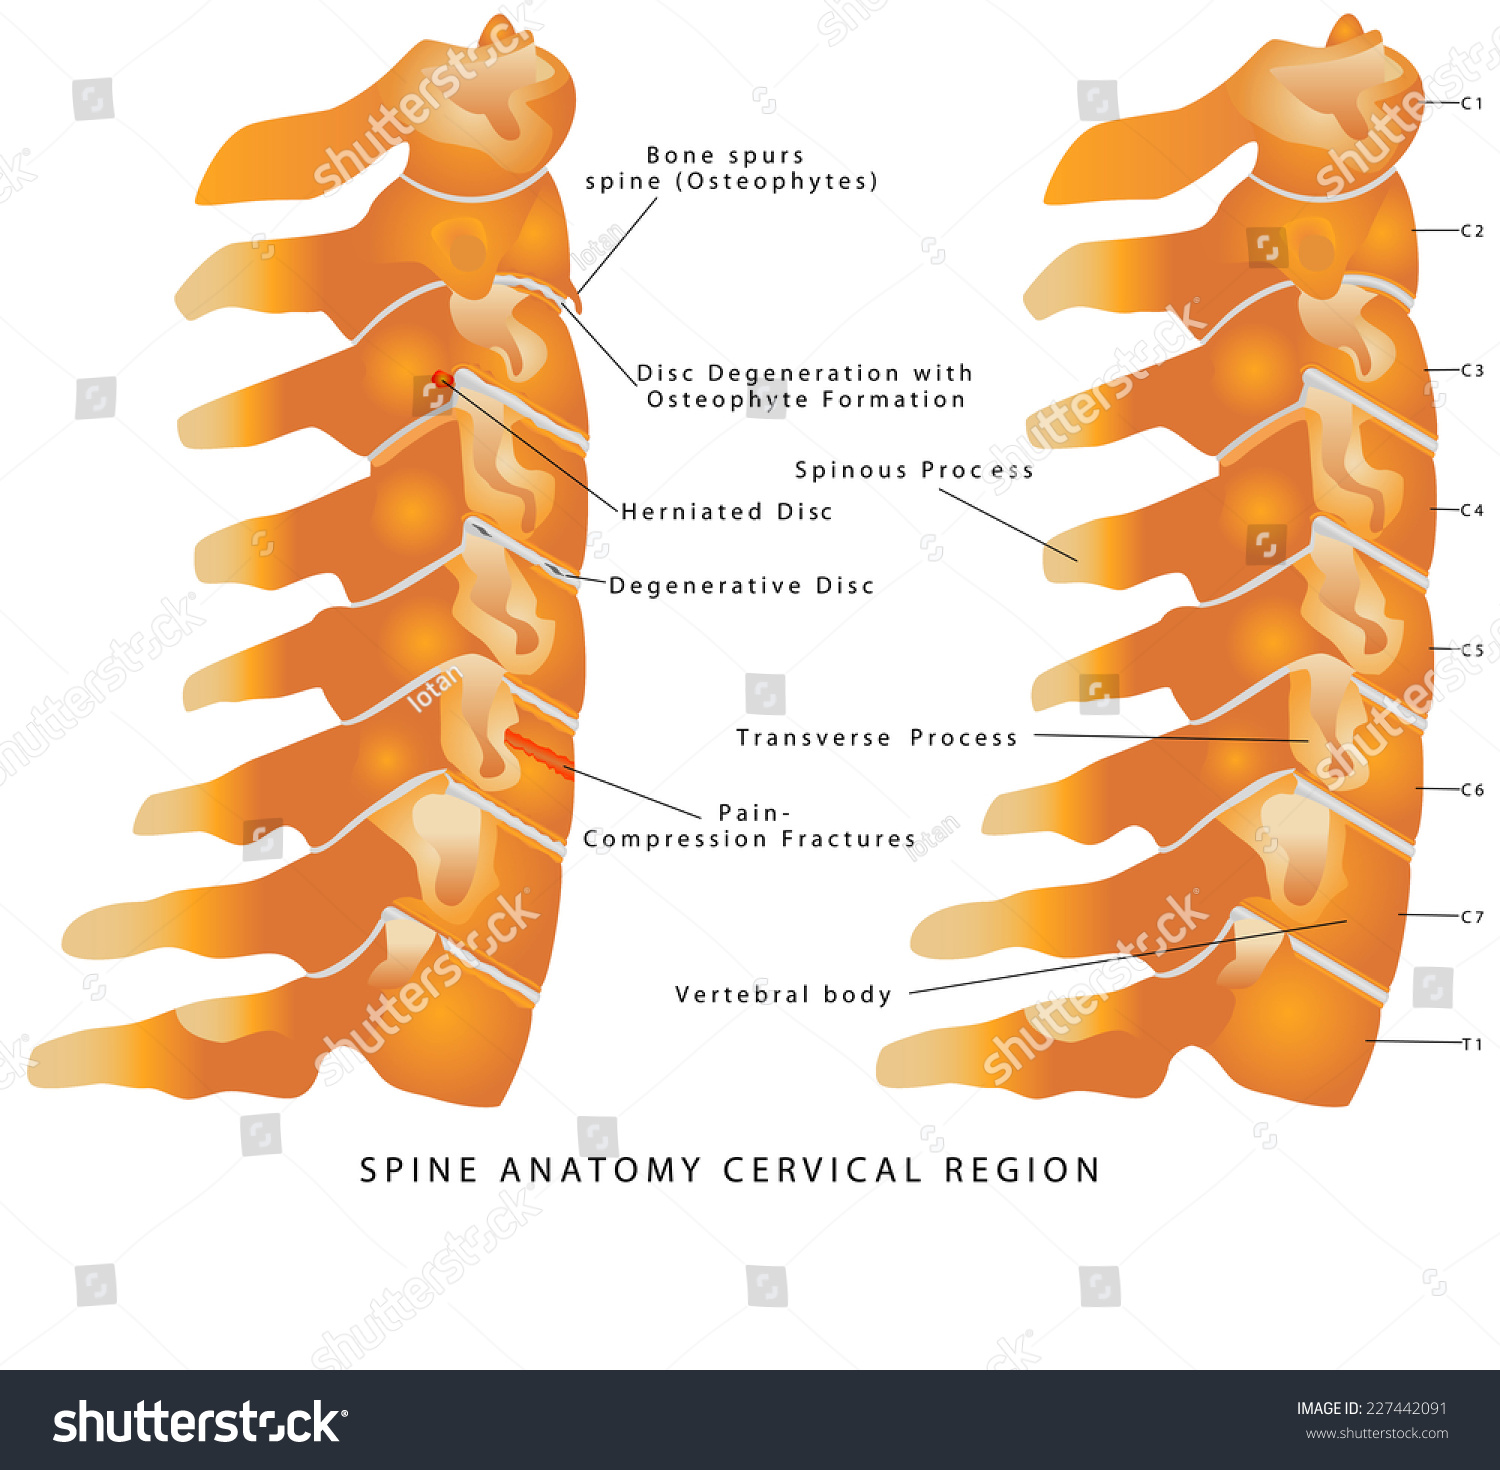 Cervical Spine Spine Anatomy Cervical Region Stock Vector (Royalty ...